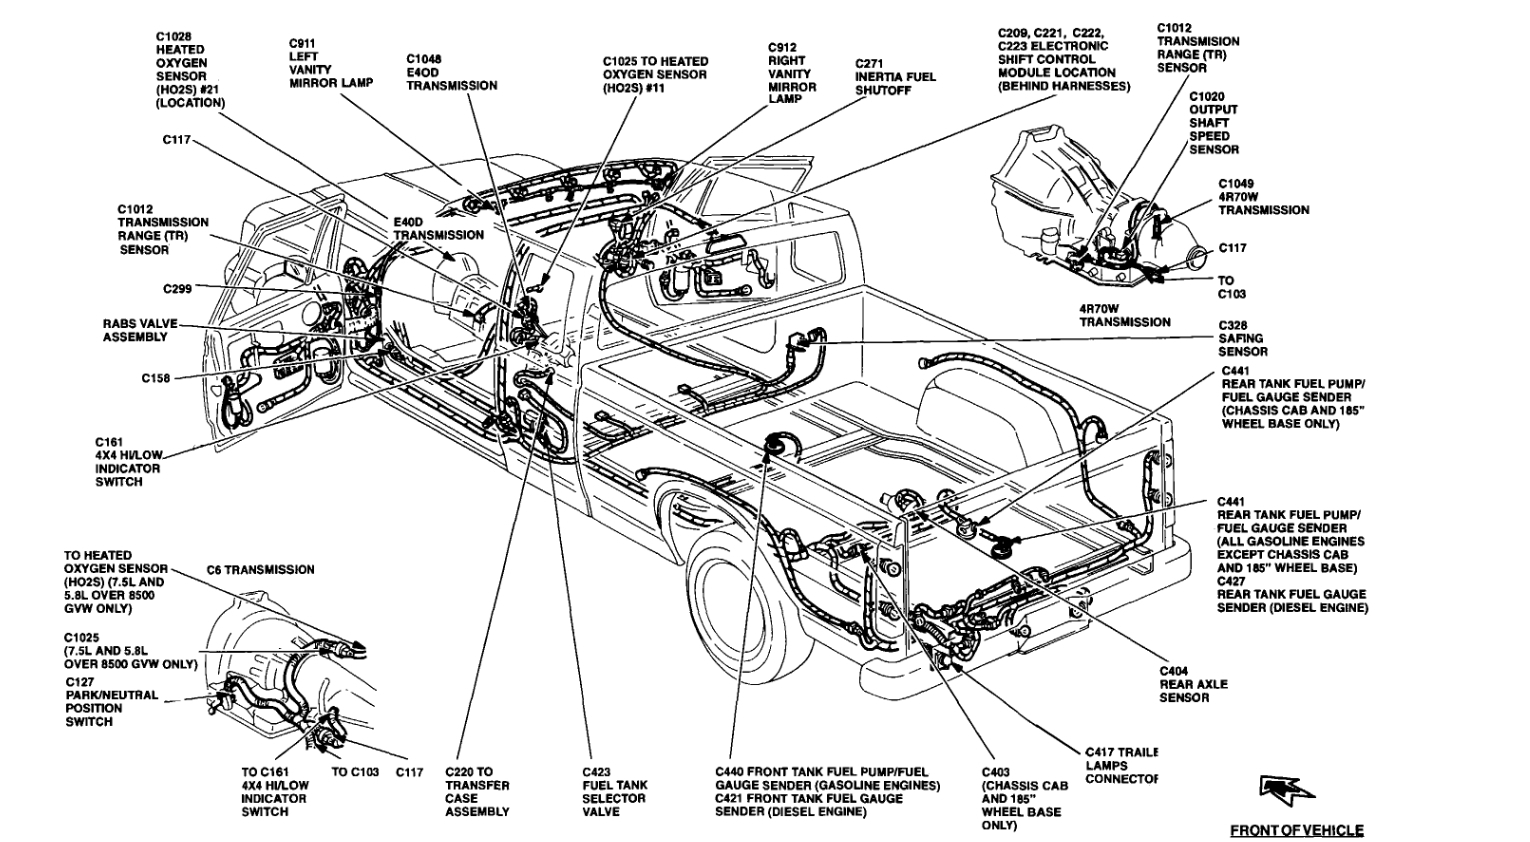 92 f150 ignition switch wiring diagram kg 8423  ford f 150 fuel system diagram ford free engine image for  kg 8423  ford f 150 fuel system diagram